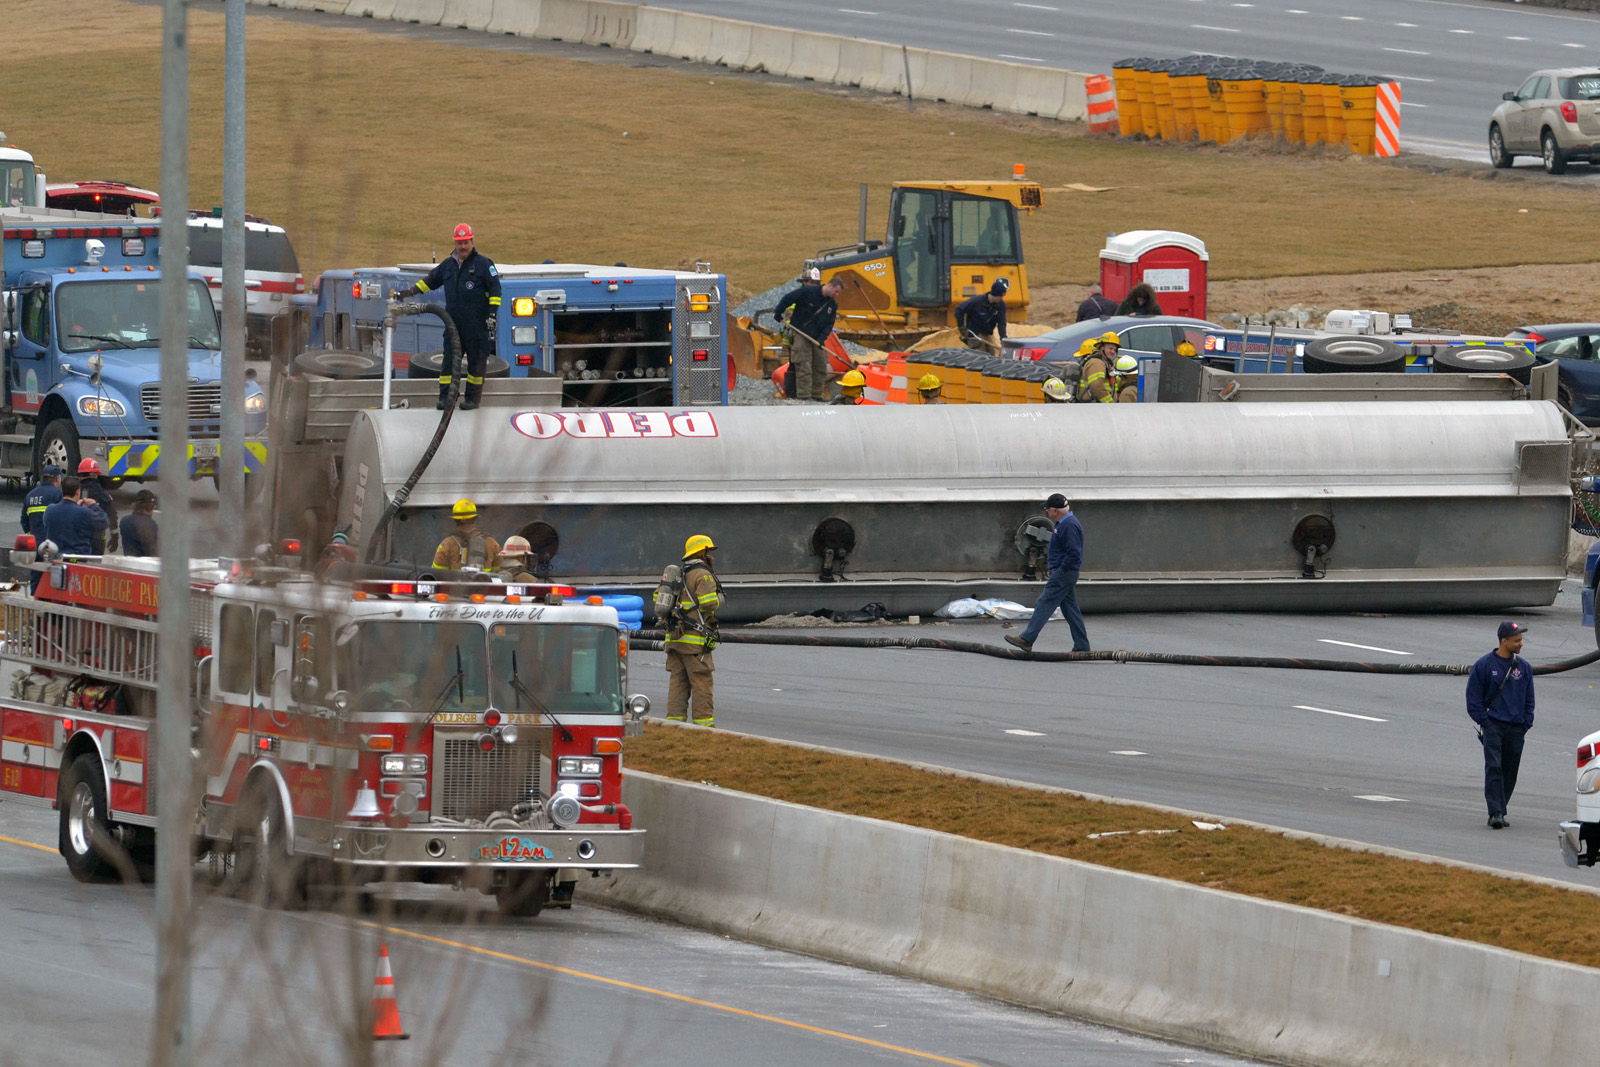 Emergency crews respond to a crash involving a  tanker truck overturned on Interstate 95 in Laurel, Md., after a crash Tuesday morning. The tanker lost more than 700 gallons of fuel. (Courtesy Bill Vaughan)